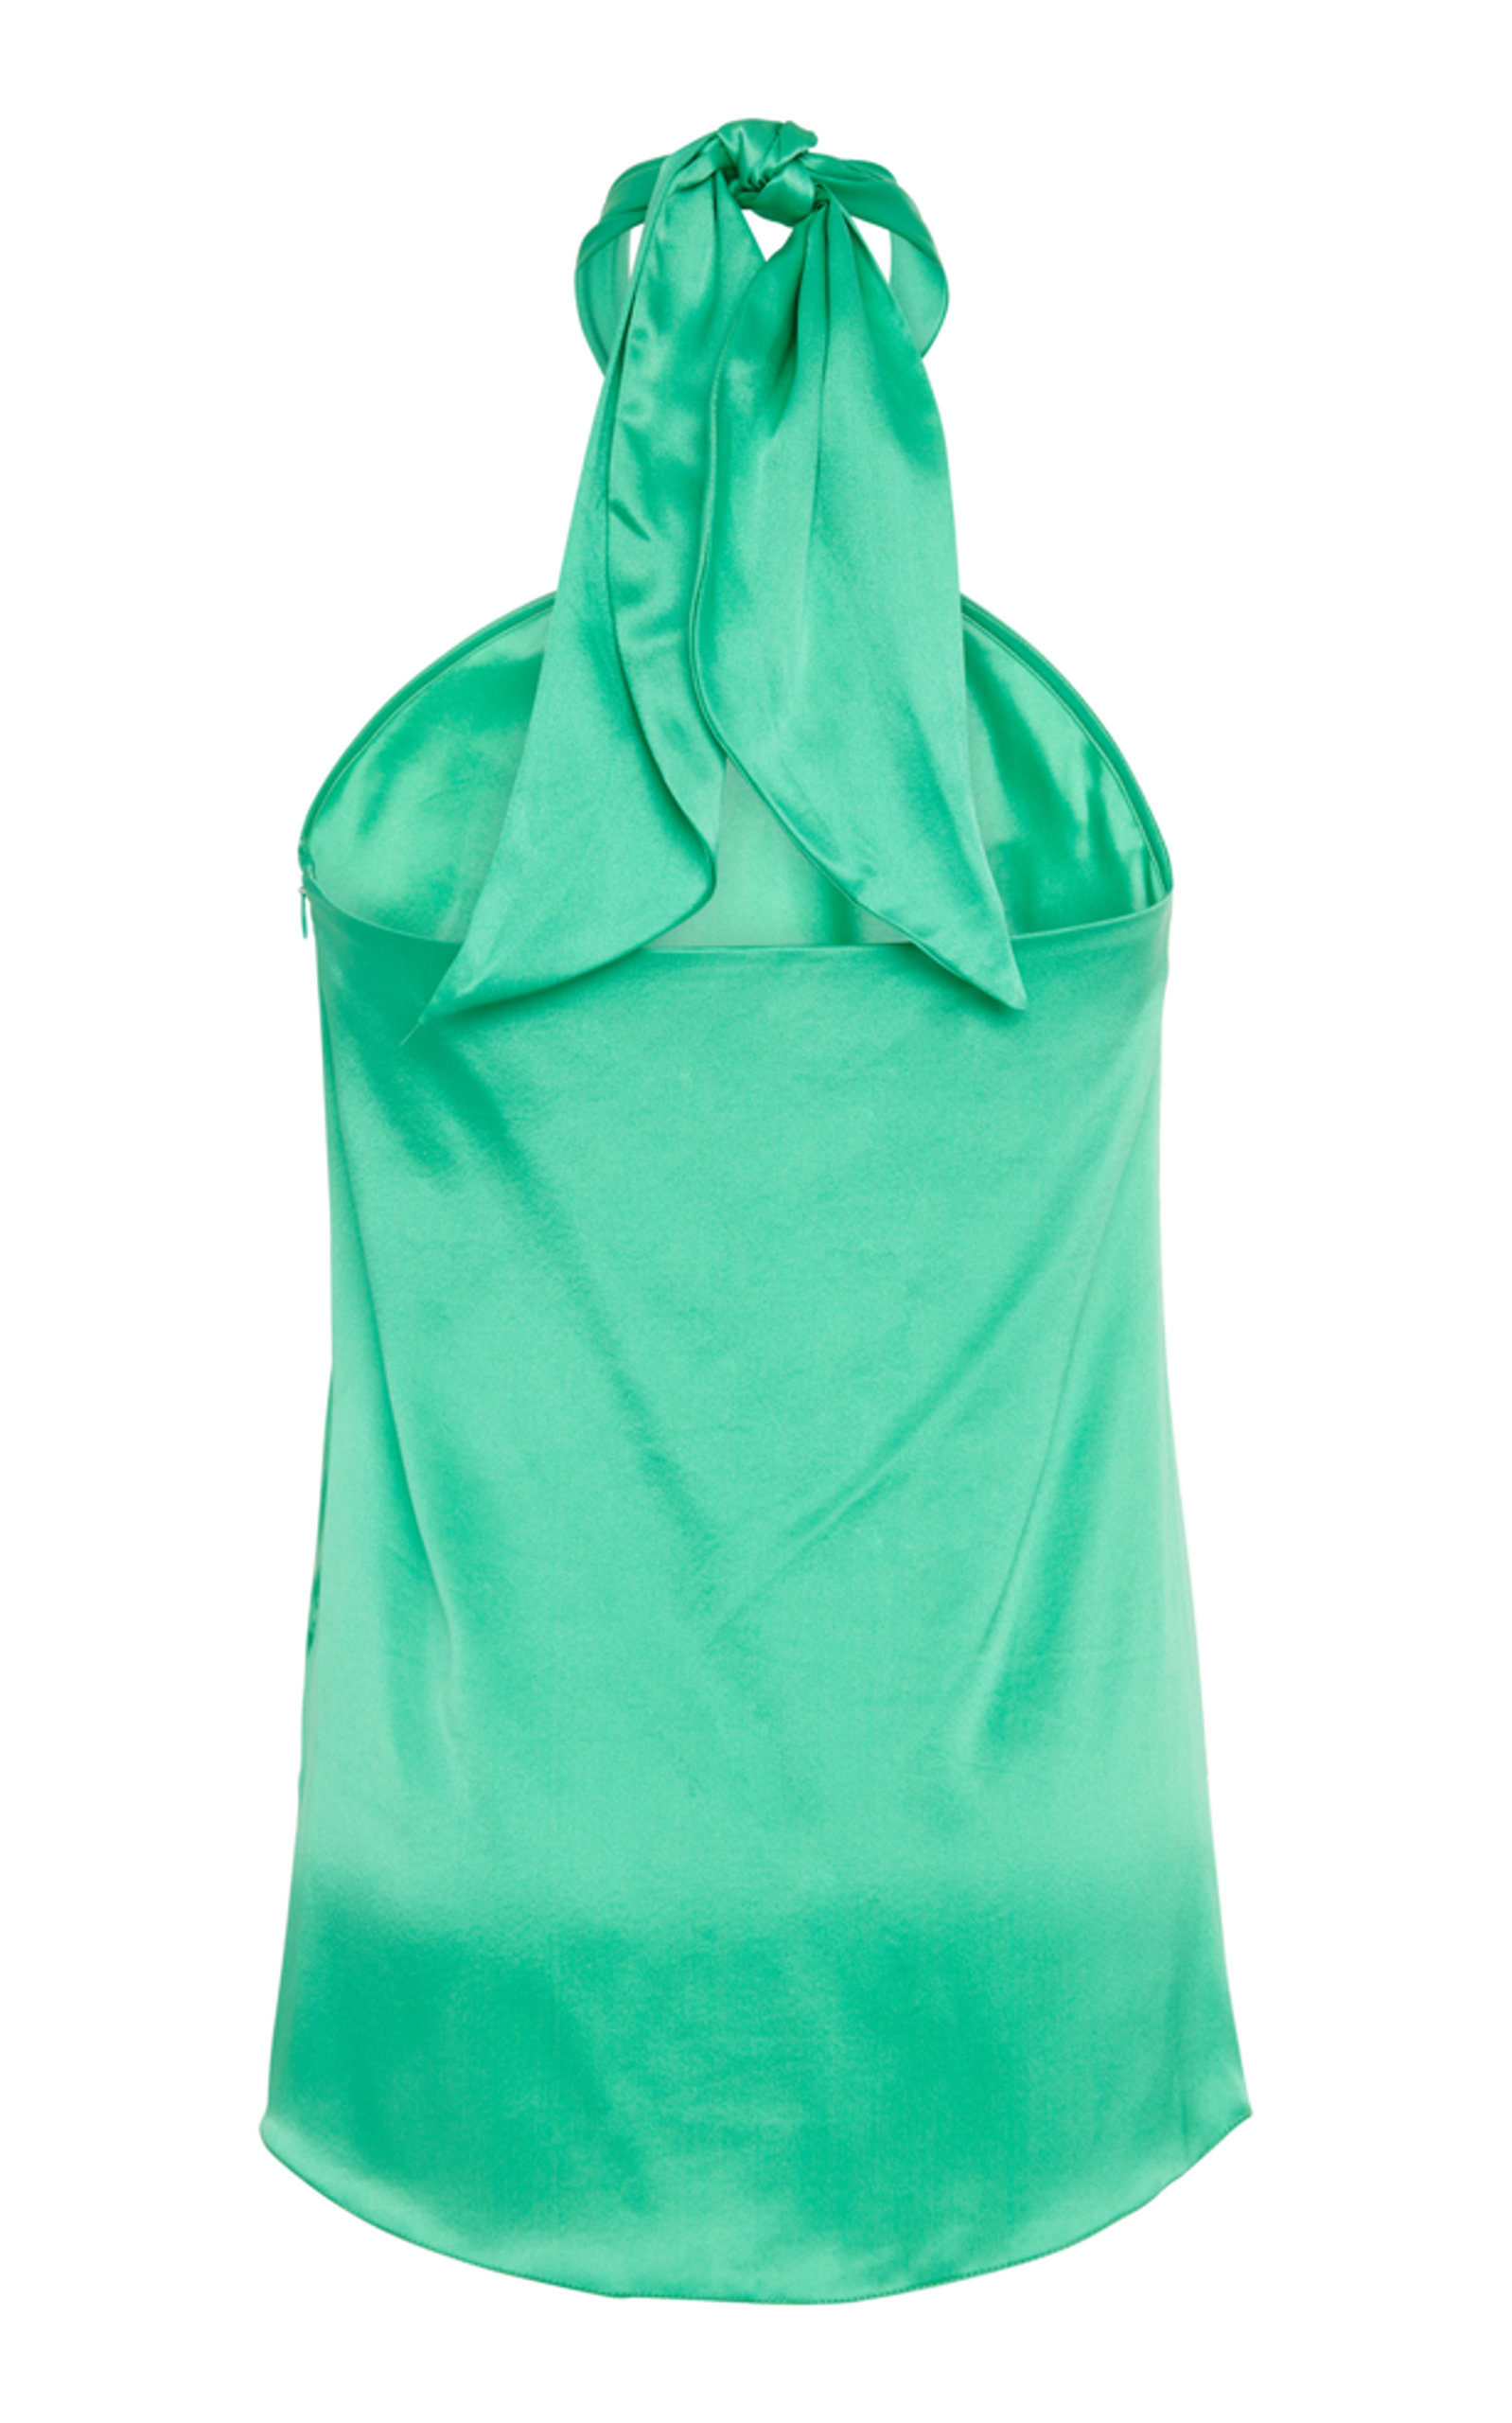 Operandi By IsoldaModa Jade Green Top K1lFTJc